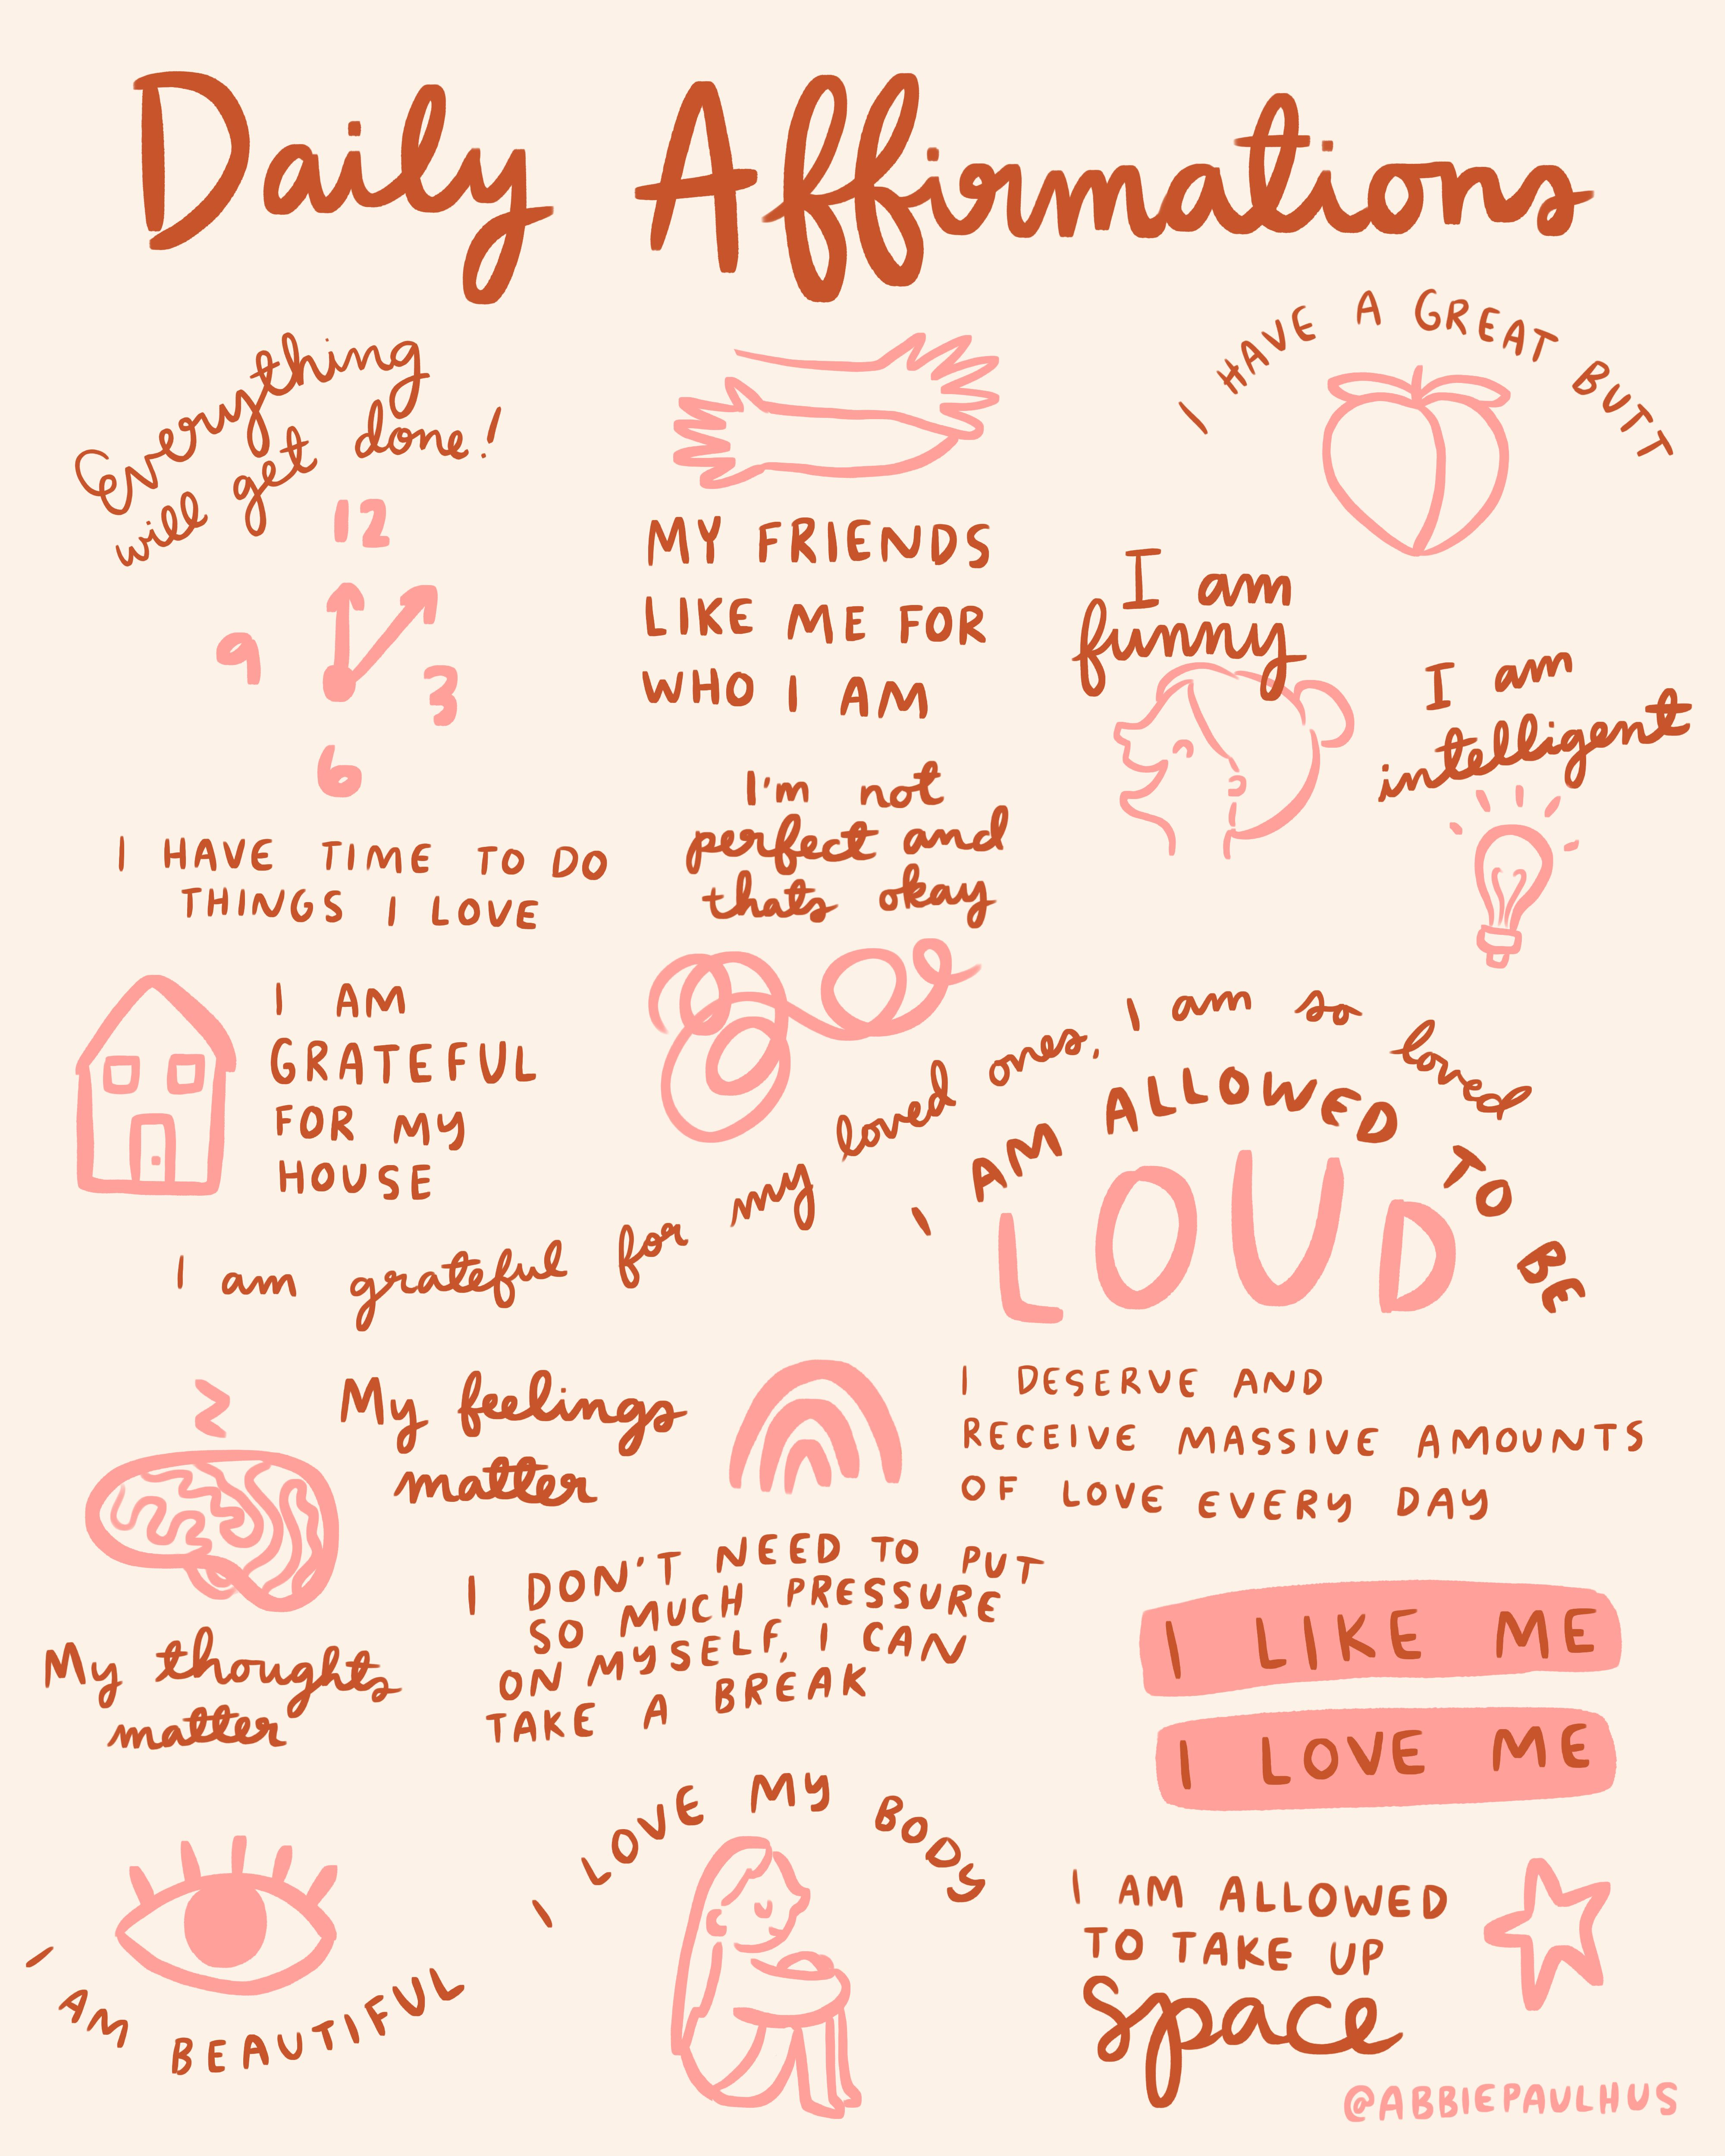 Daily affirmations - @abbiepaulhus